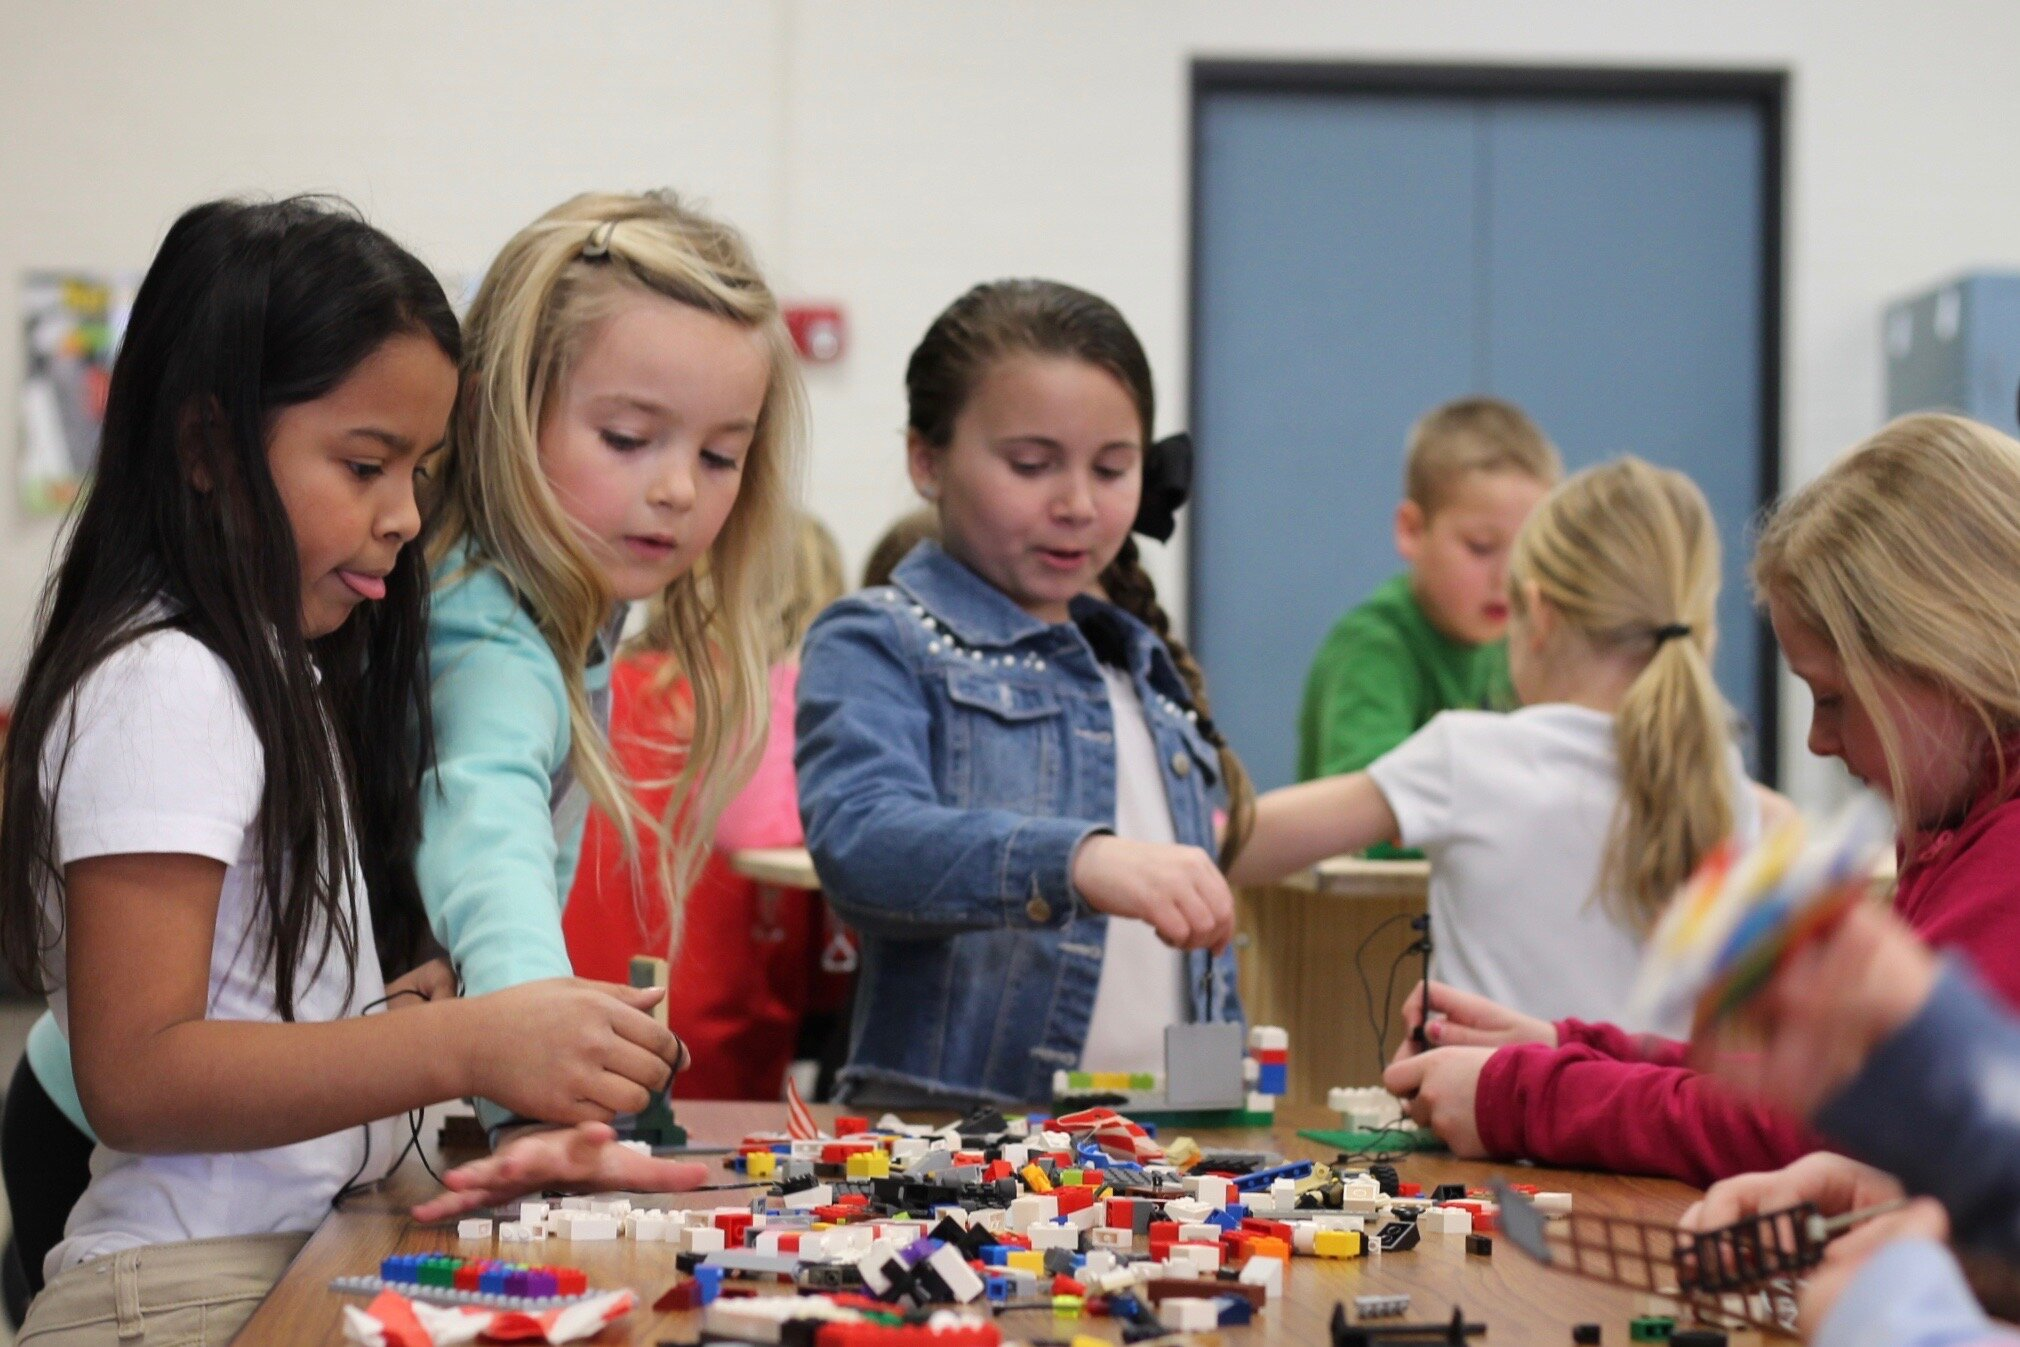 Mobile Lab - Innovation Stations girls with legos.jpg